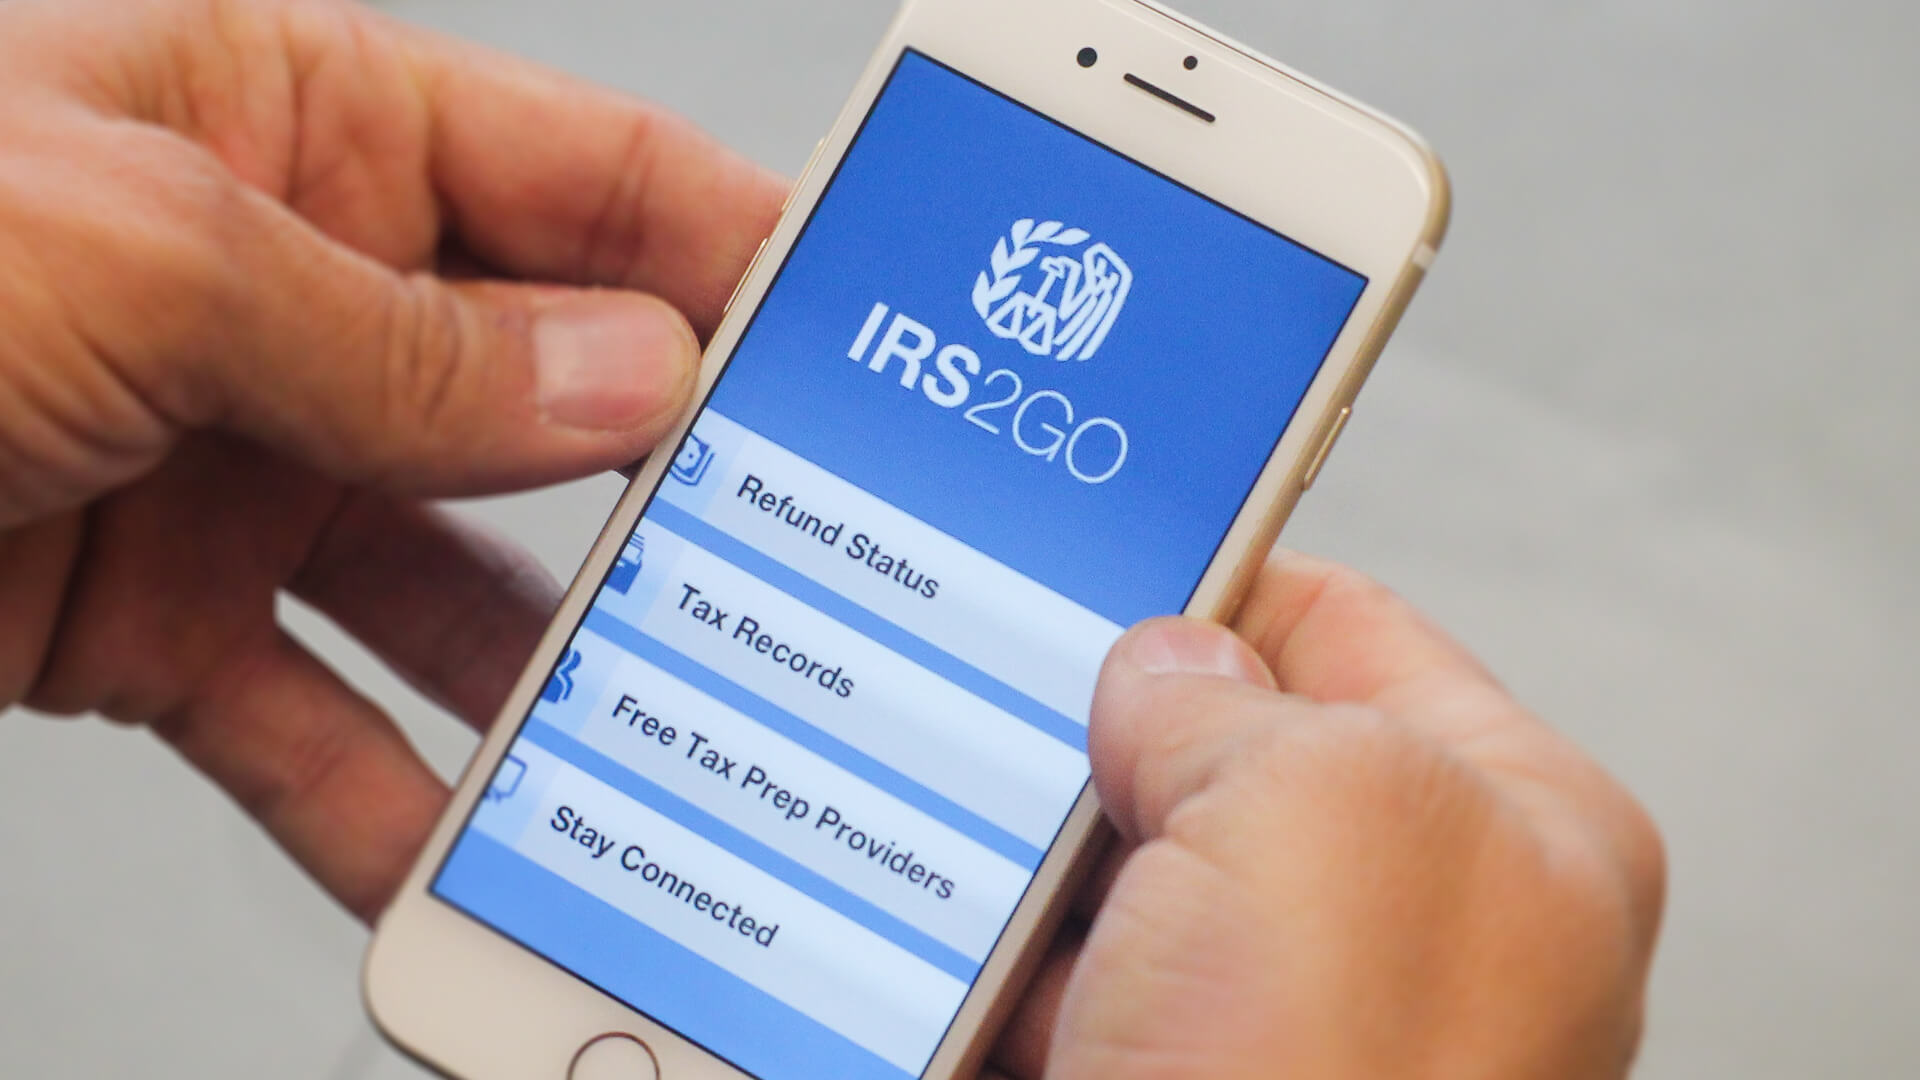 IRS2Go App Review: Useful Free App for Tax Season | GOBankingRates